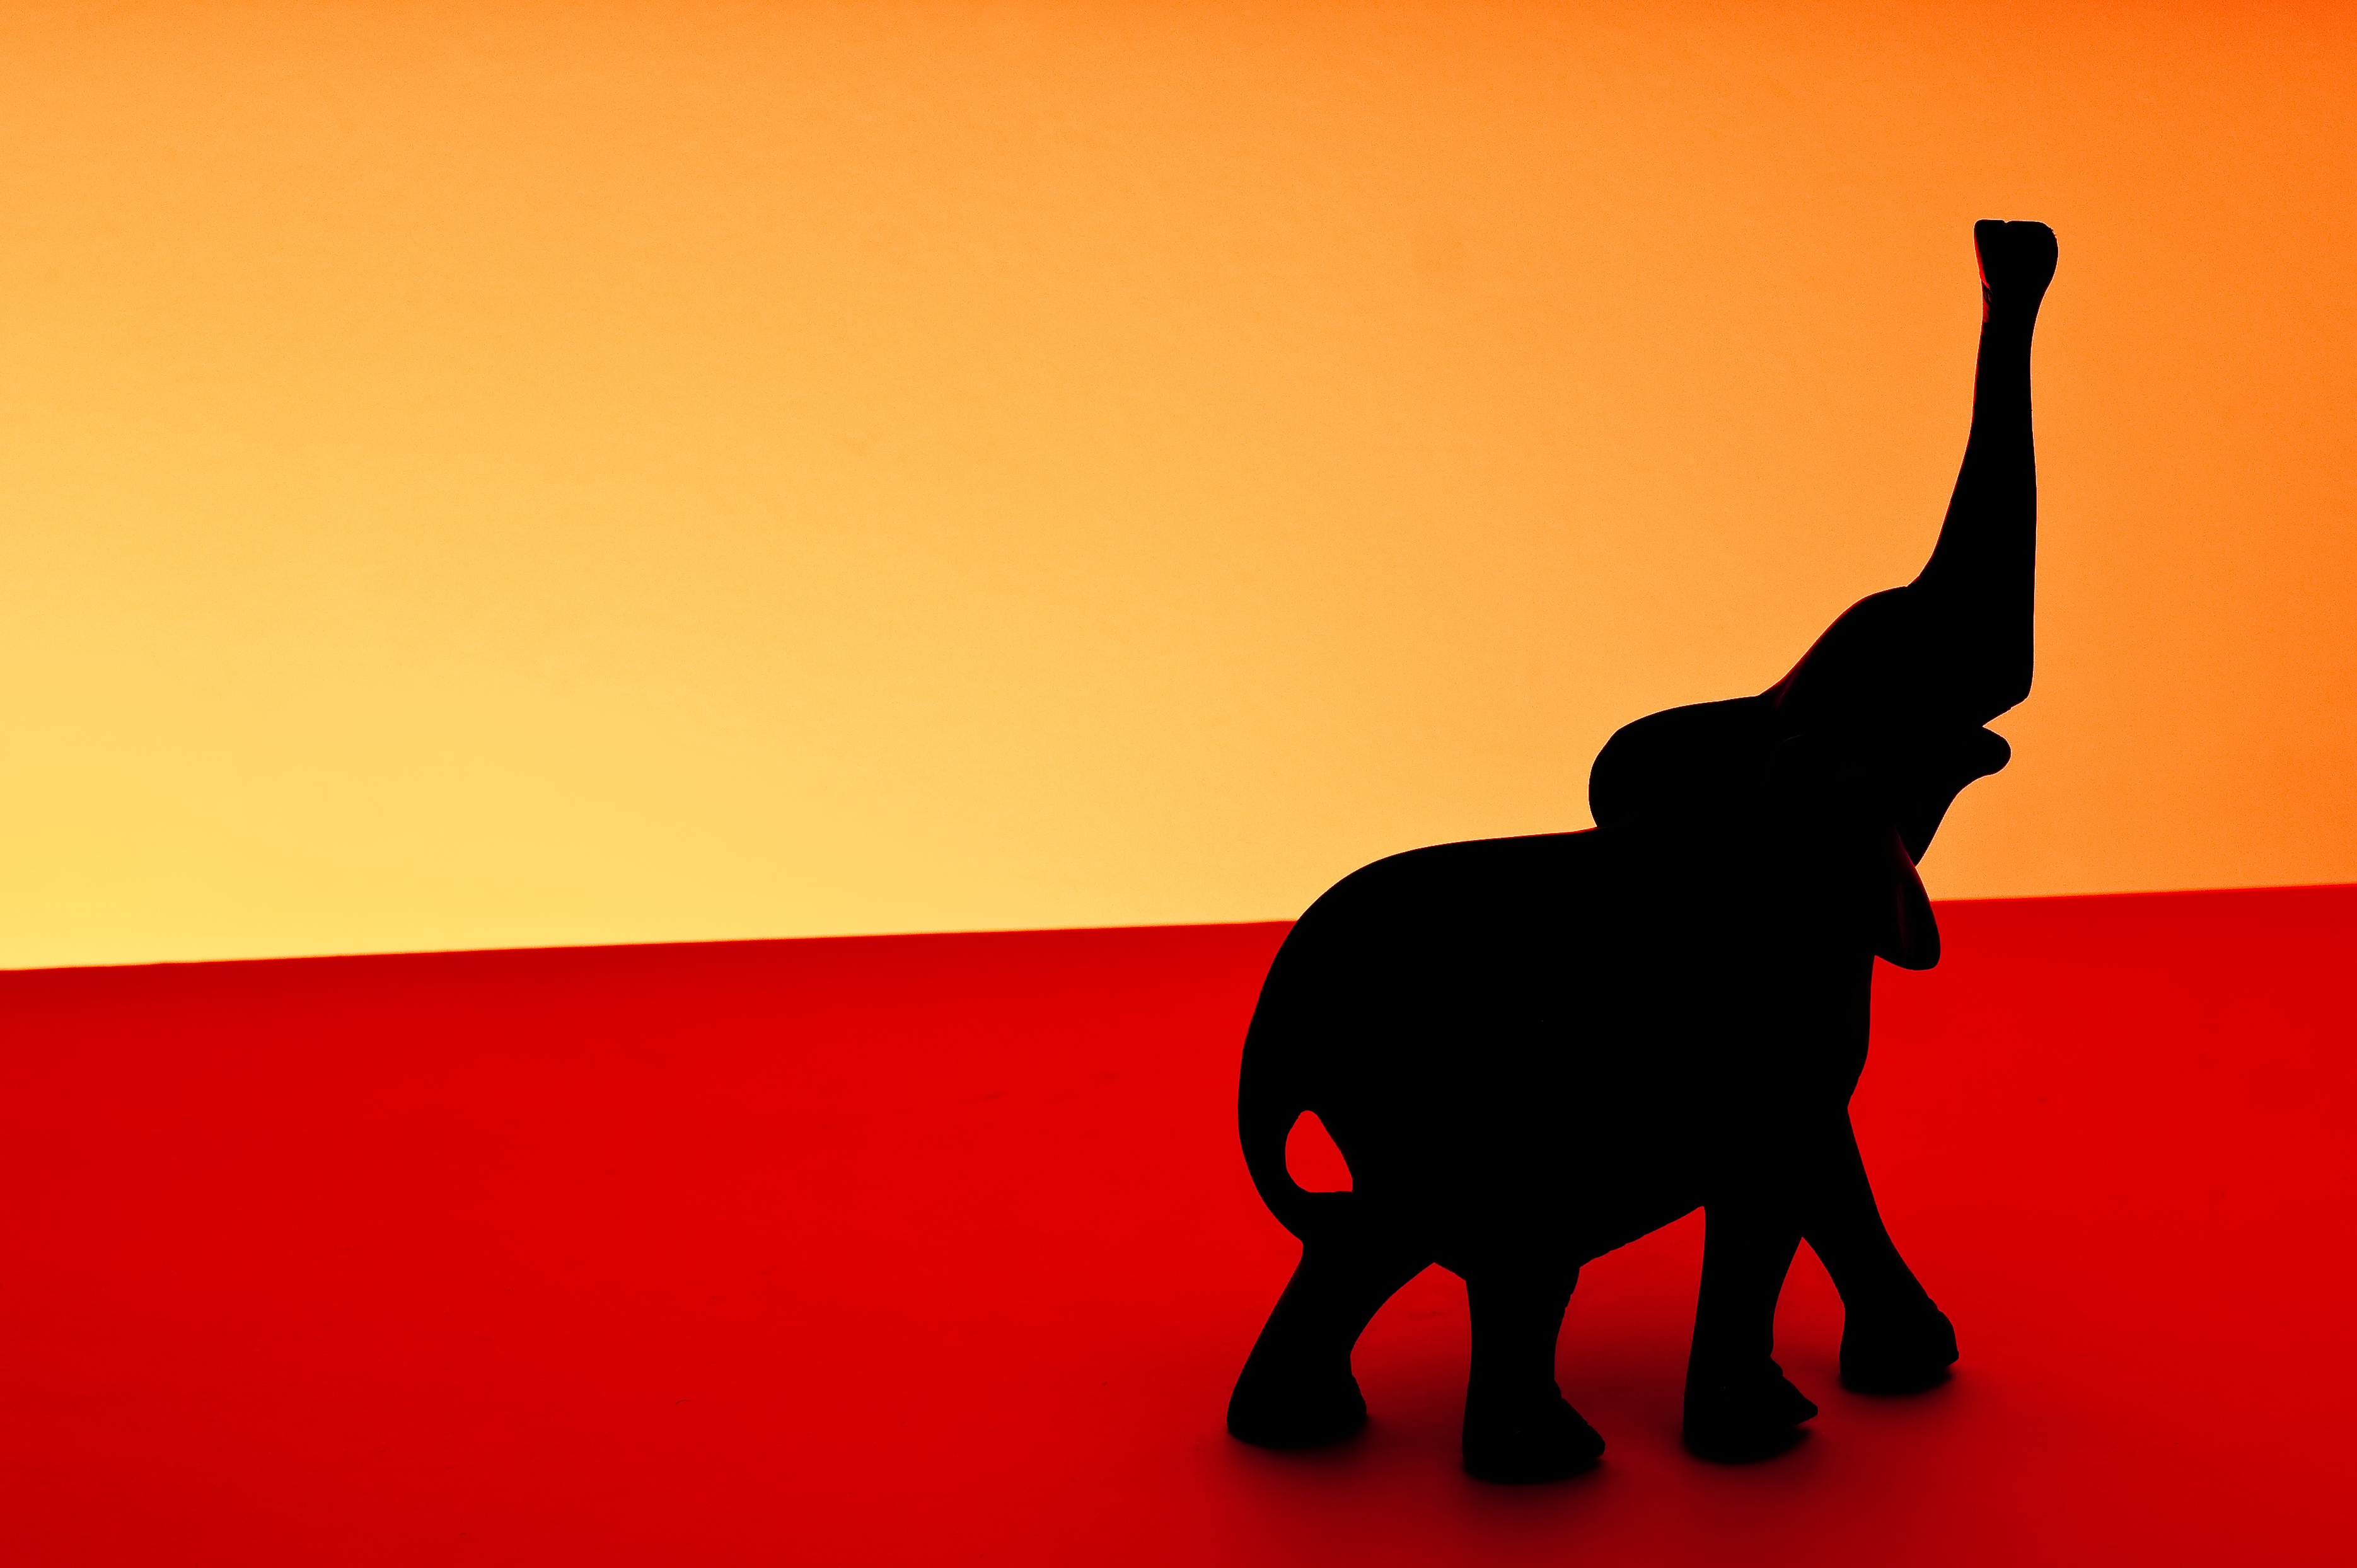 3739x2488 Wallpaper Africa, Sunset, Shadow, Red, Elephant, Black, Oneaday